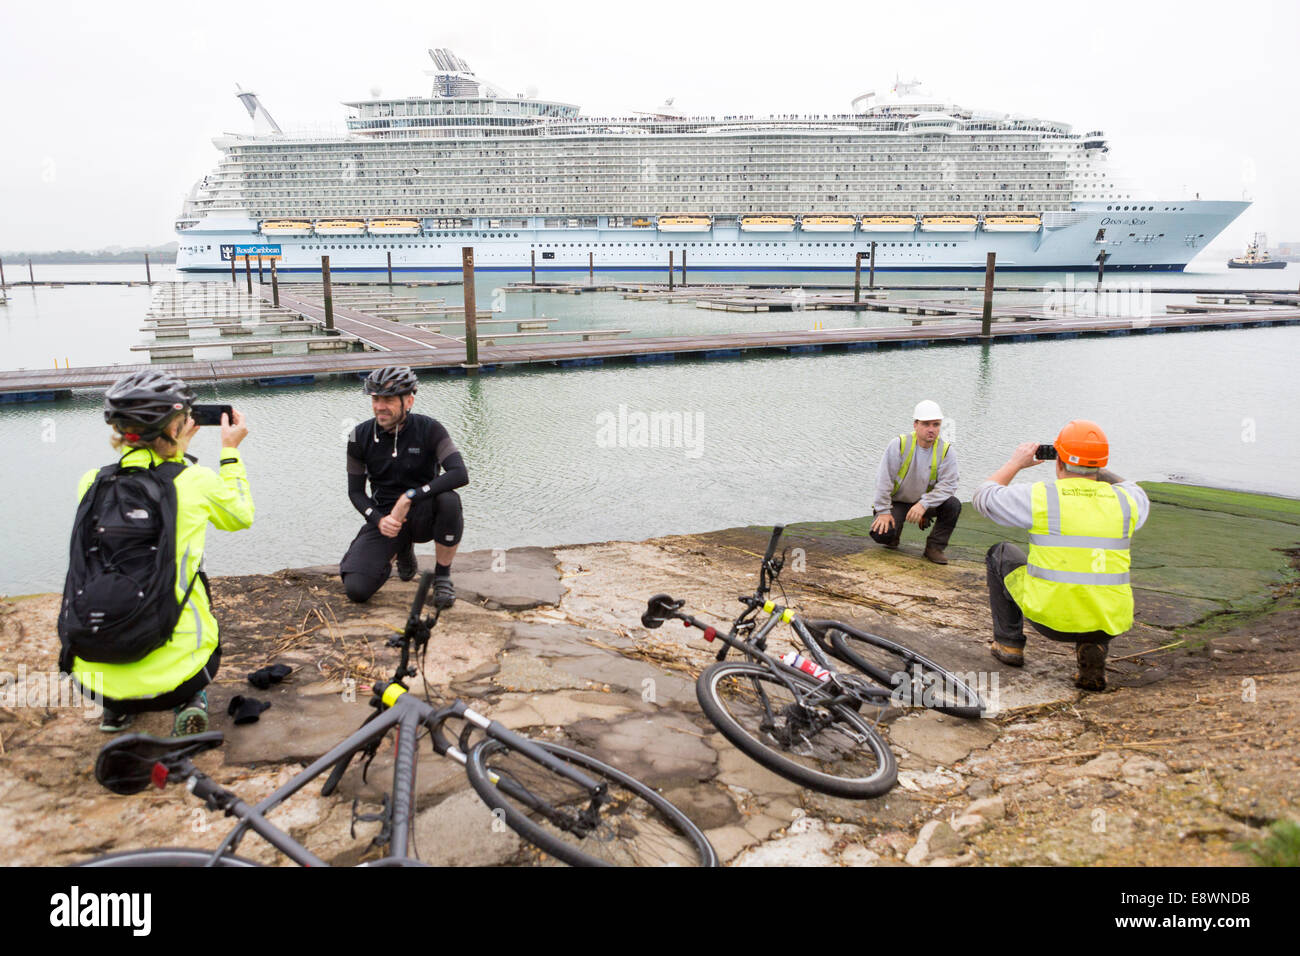 Spectators take pictures as the world's largest cruise ship, Oasis of the Seas arrives in Southampton for a - Stock Image